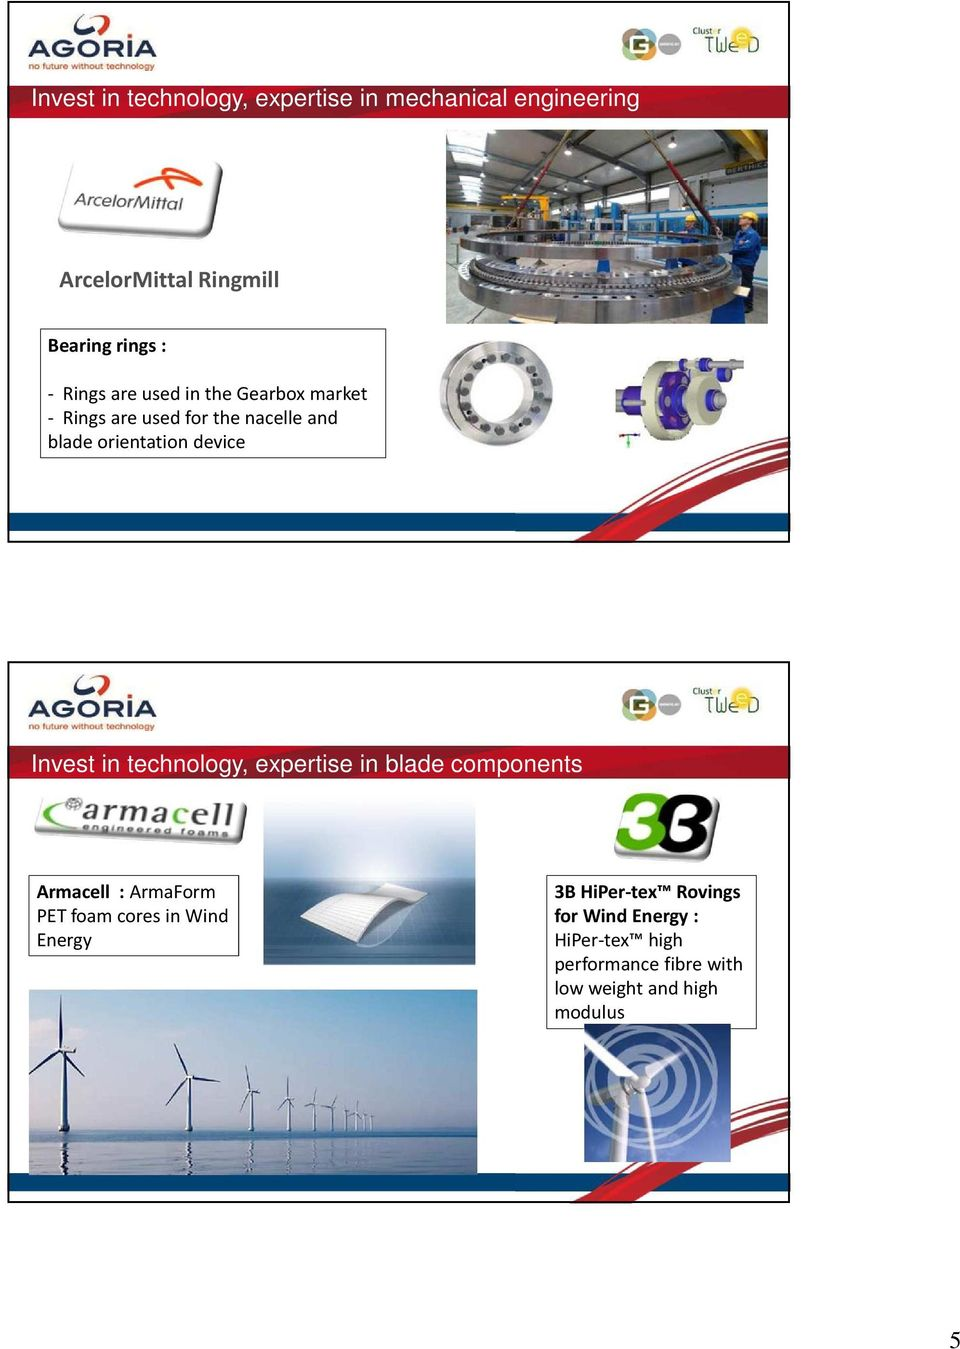 Invest in technology, expertise in blade components Armacell : ArmaForm PET foamcoresin Wind Energy